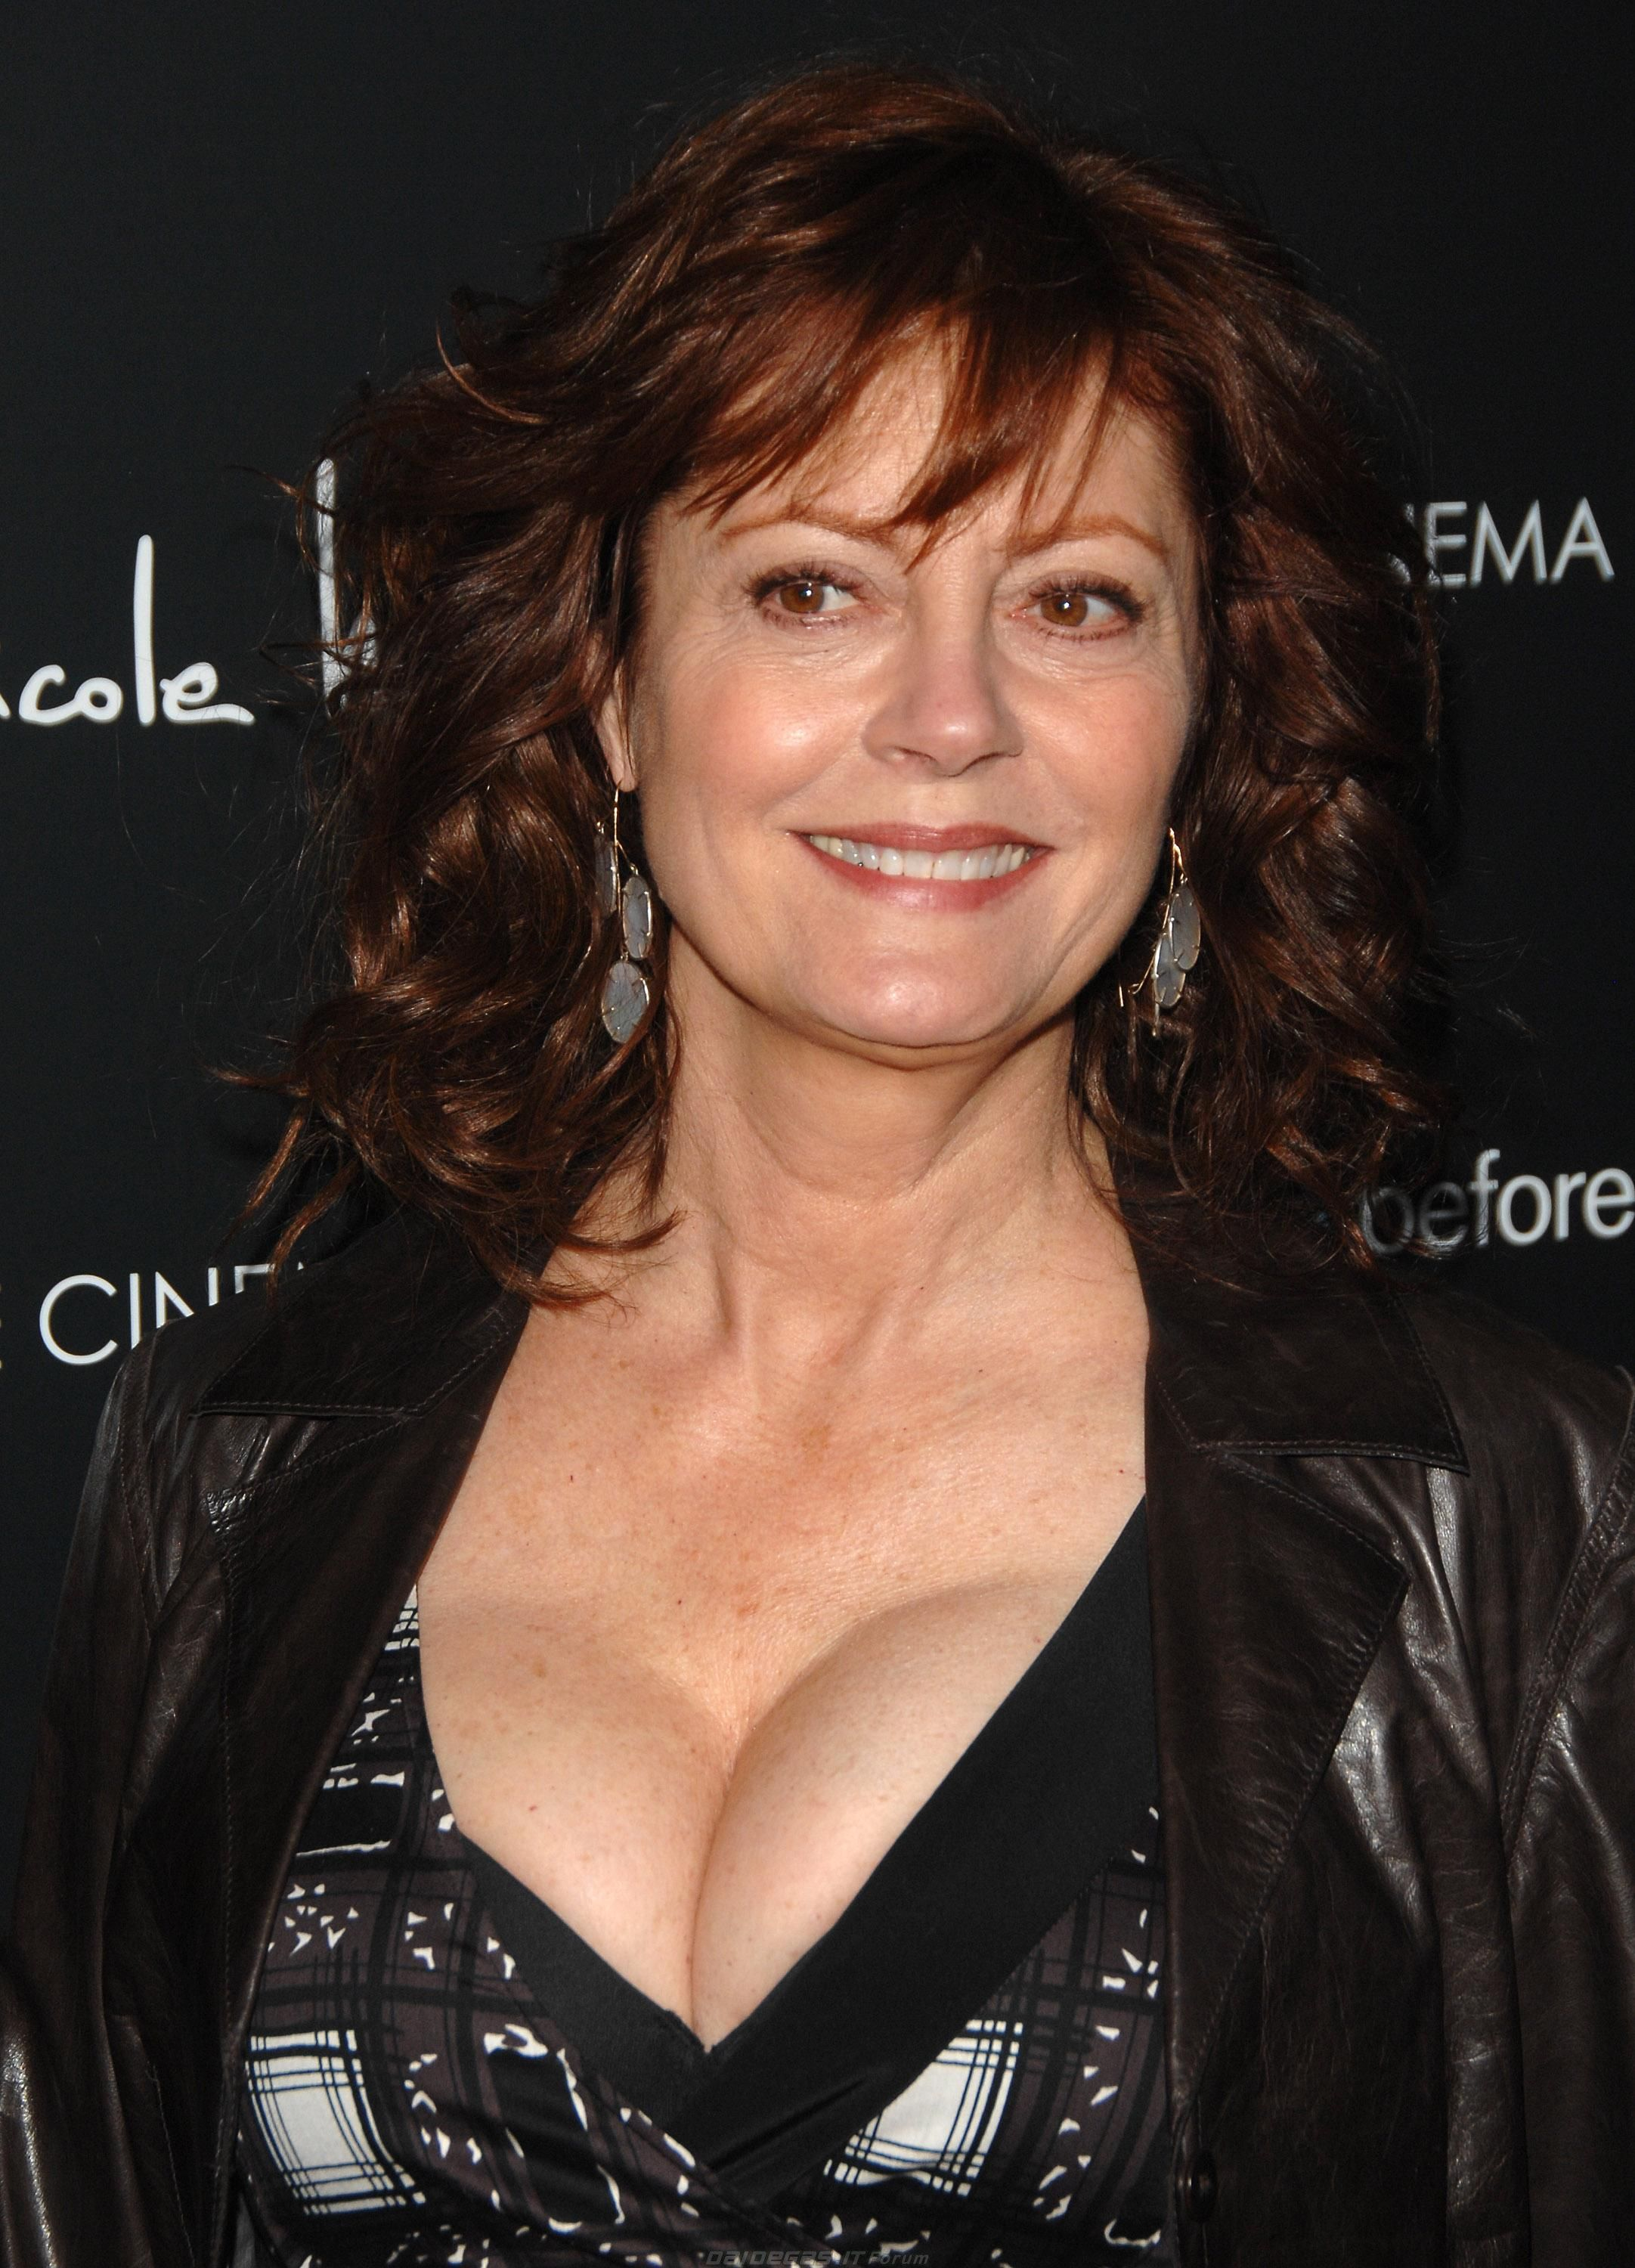 Bikini Susan Sarandon nudes (11 photo), Topless, Is a cute, Boobs, bra 2015